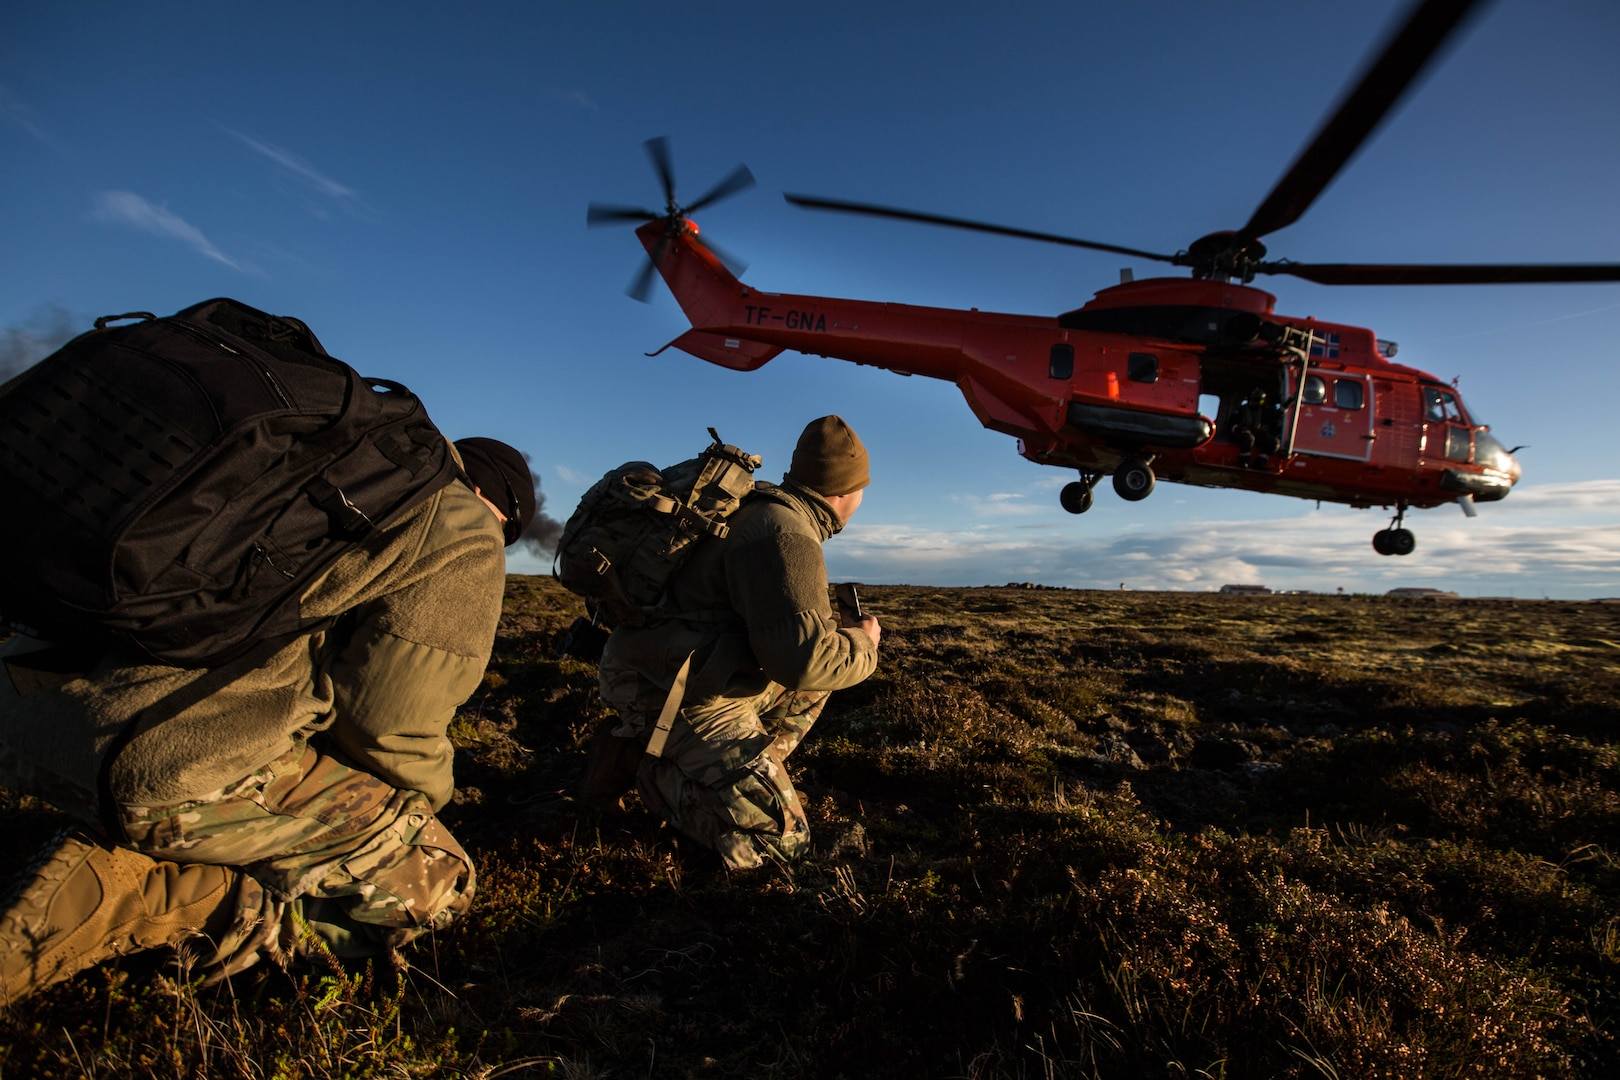 Army Explosive Ordnance Disposal Technicians look on as Icelandic coastguard helicopter takes off from field in Iceland during exercise Northern Challenge 2017 (NATO/Laurence Cameron)